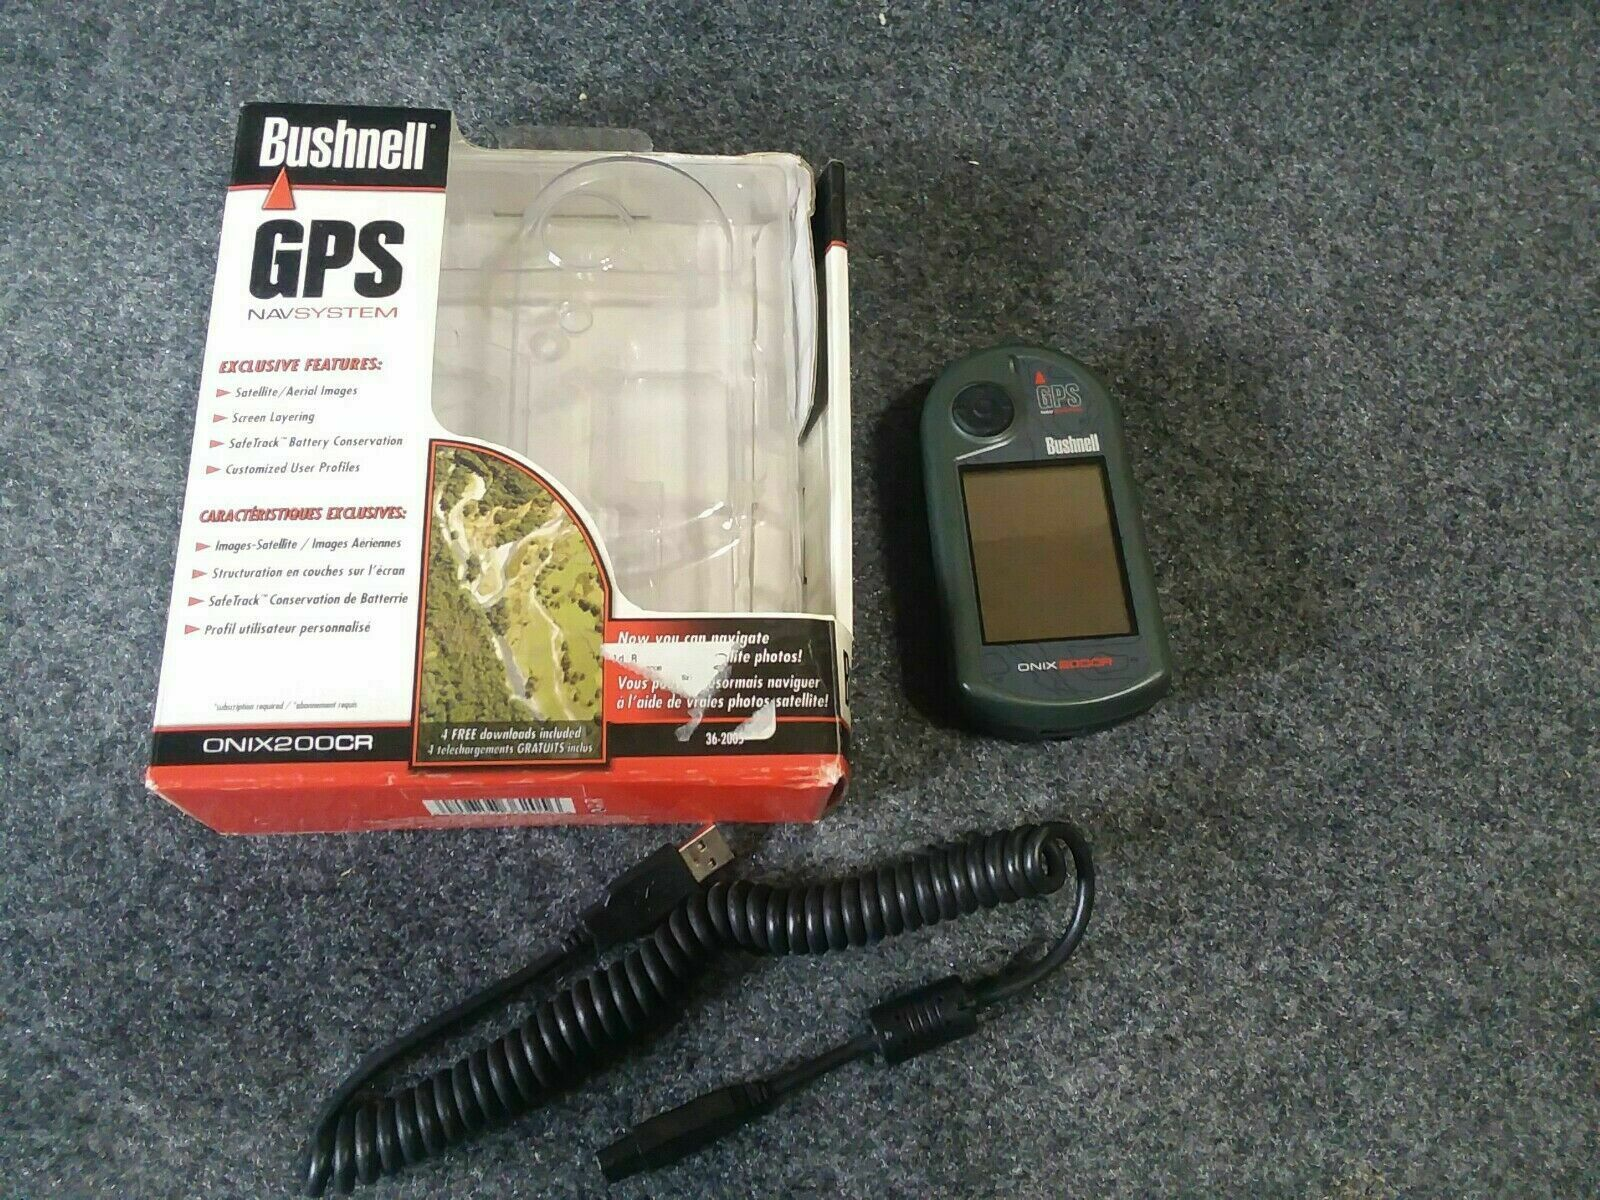 Factory Sealed Bushnell GPS Navsystem Handheld GPS Unit ONIX200CR IOB